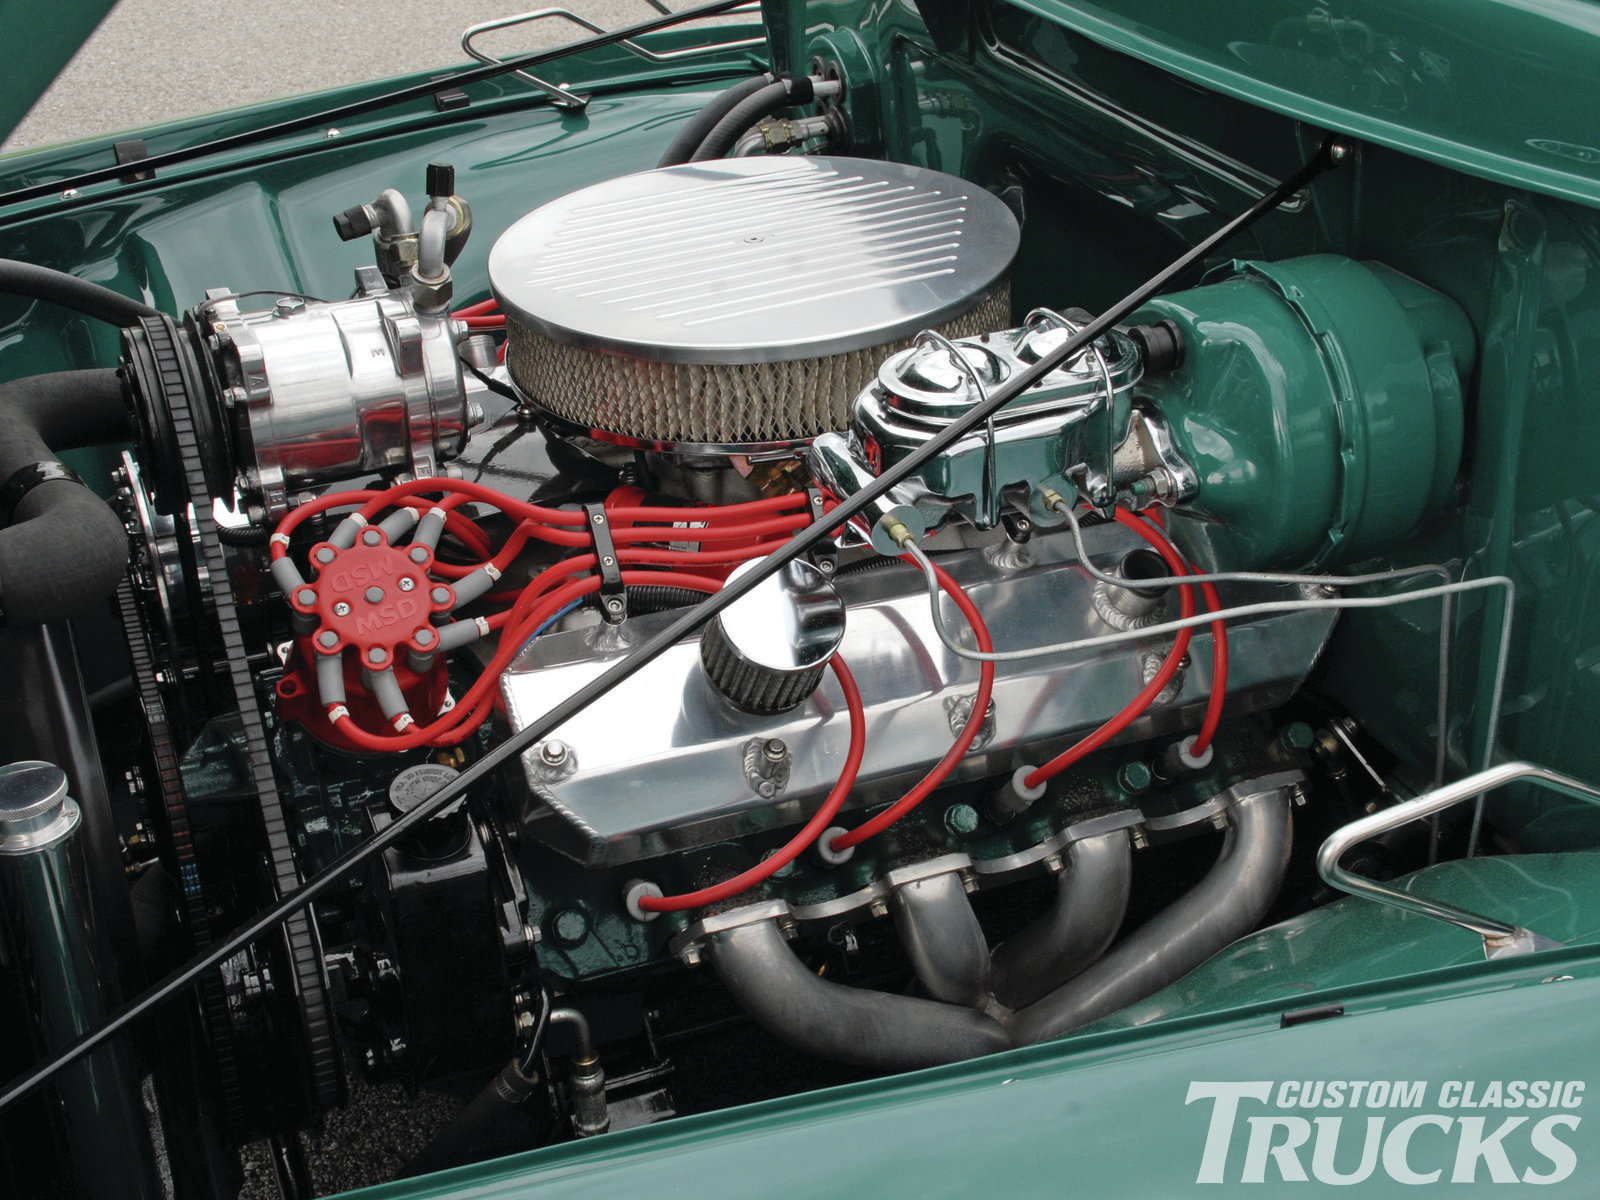 What could be more traditional than a Cadillac motor in a hot rod truck? This is a '76 Caddy that displaces 500 cubic inches. Edelbrock intake, Keith Black pistons, and reworked heads make this Potter Automotive motor good for 400 ponies.